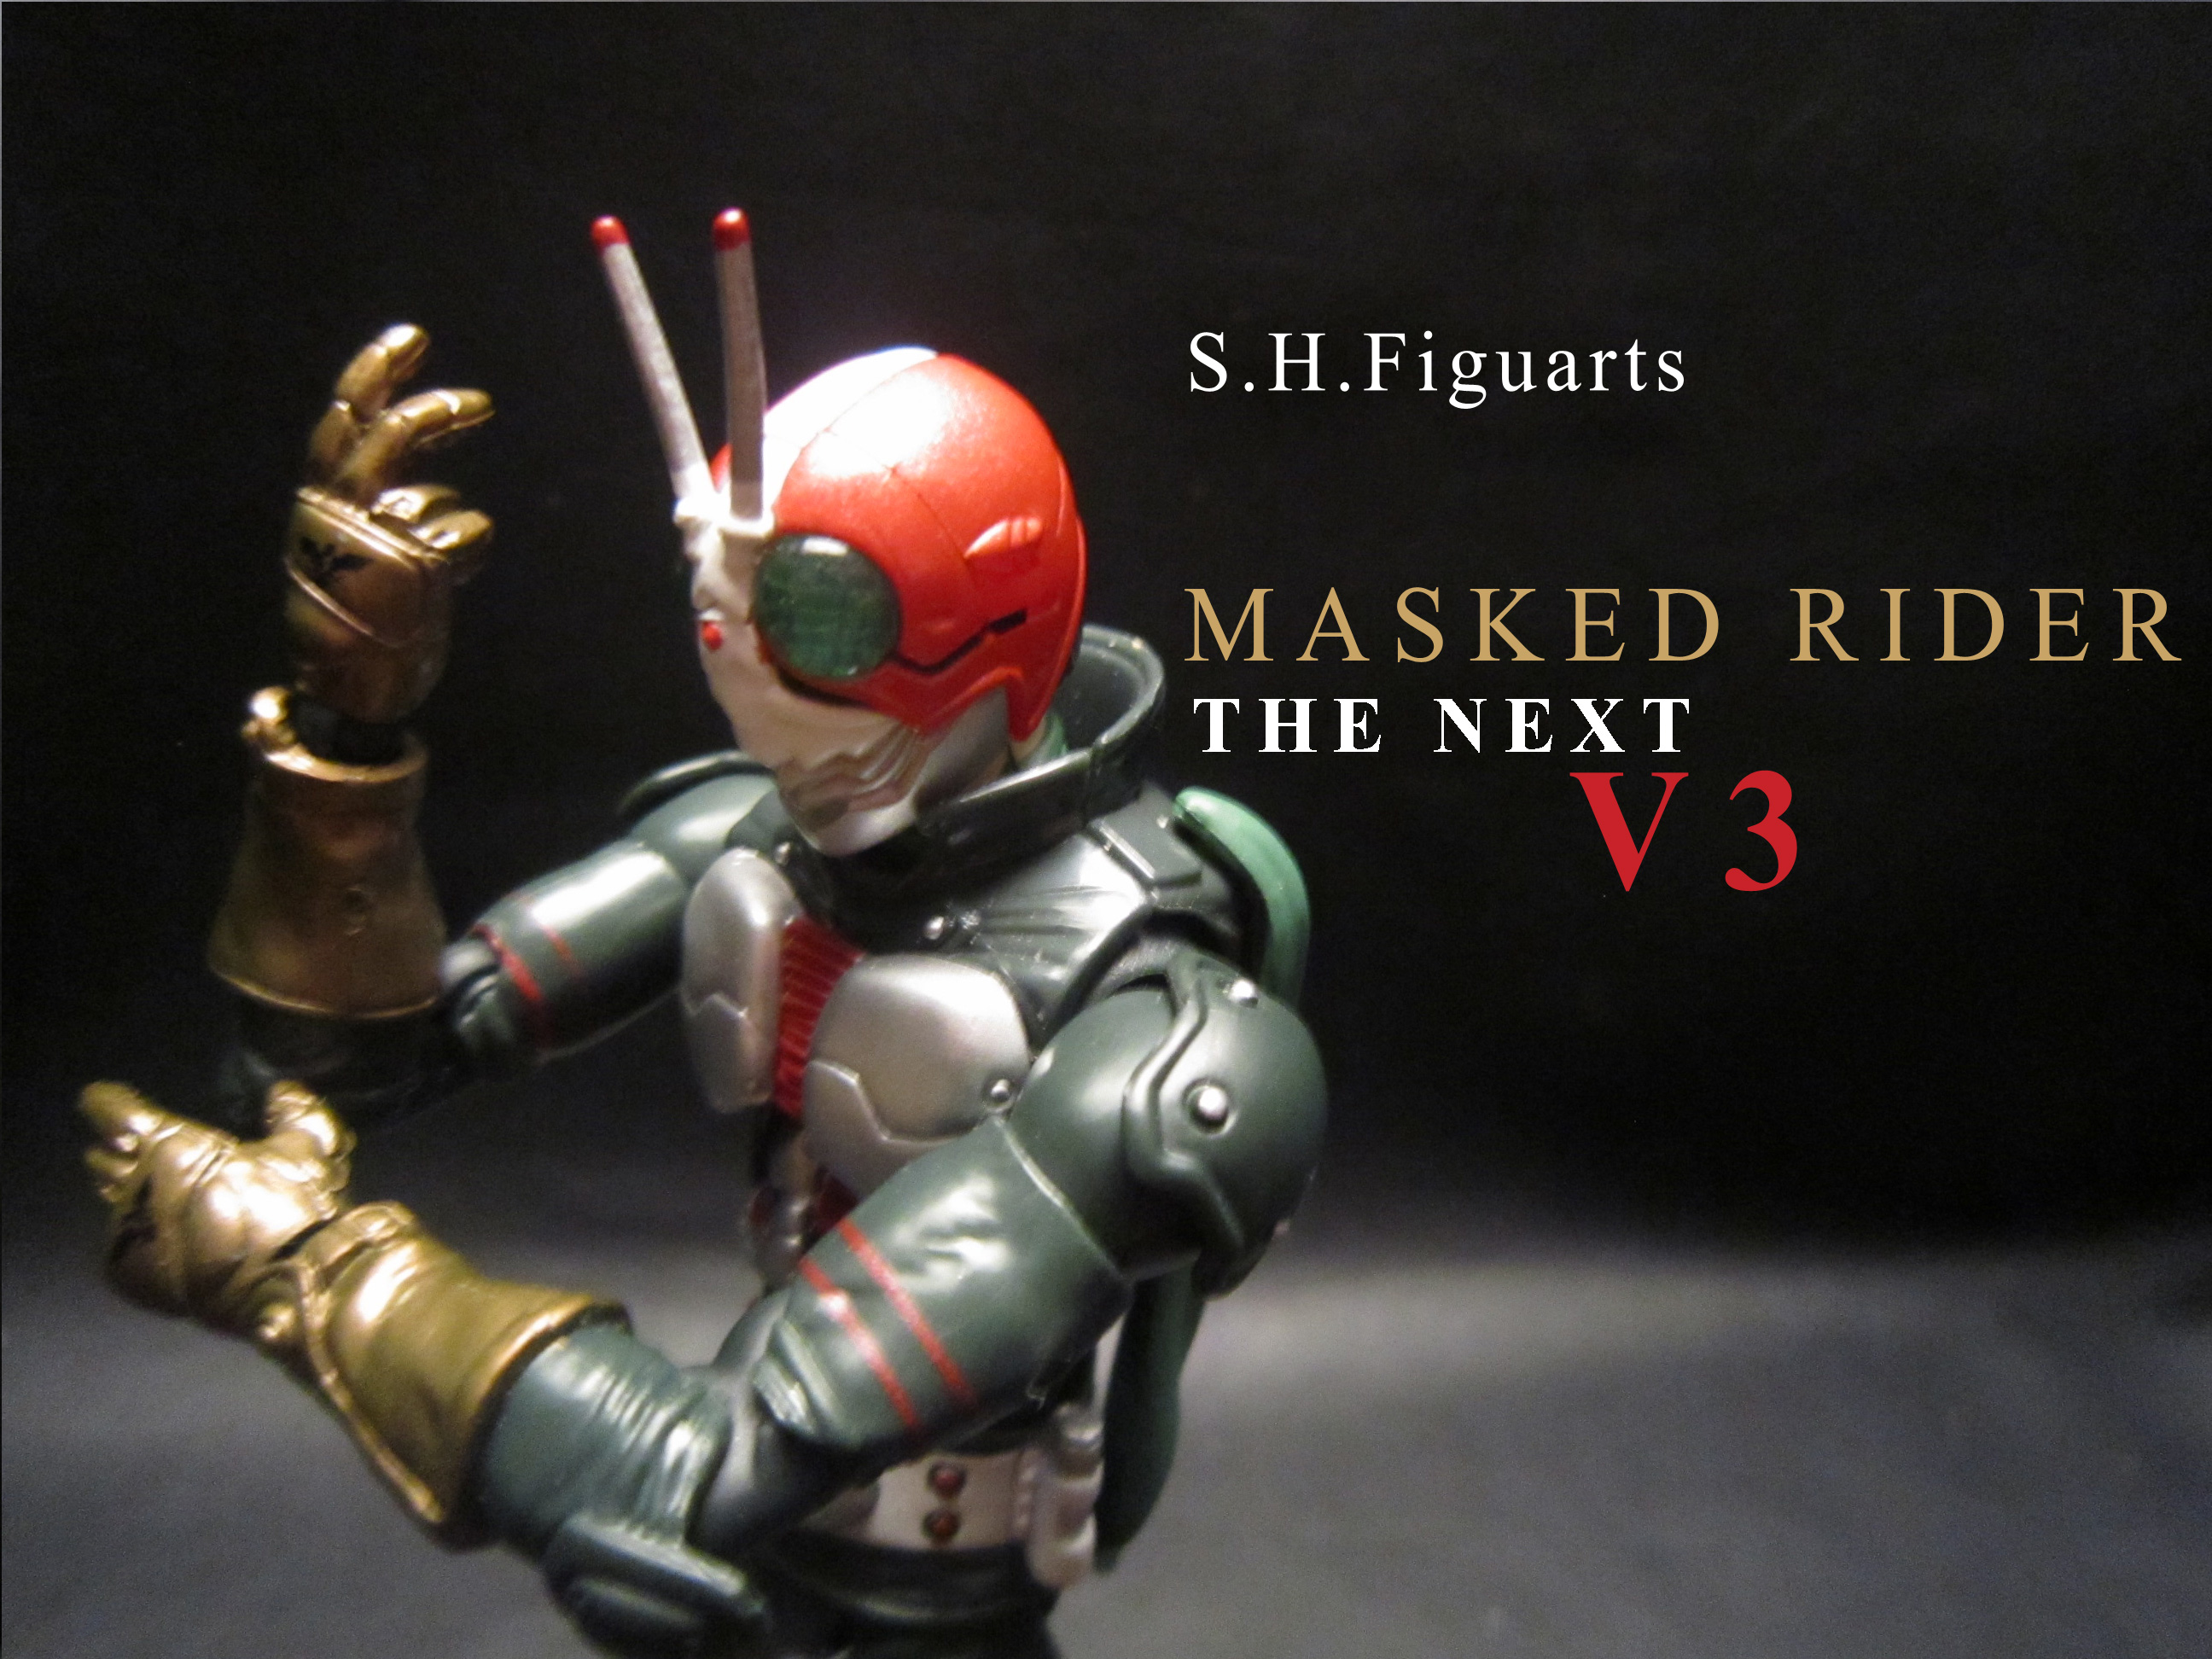 S.H.Figuarts 仮面ライダーV3 THE NEXT版